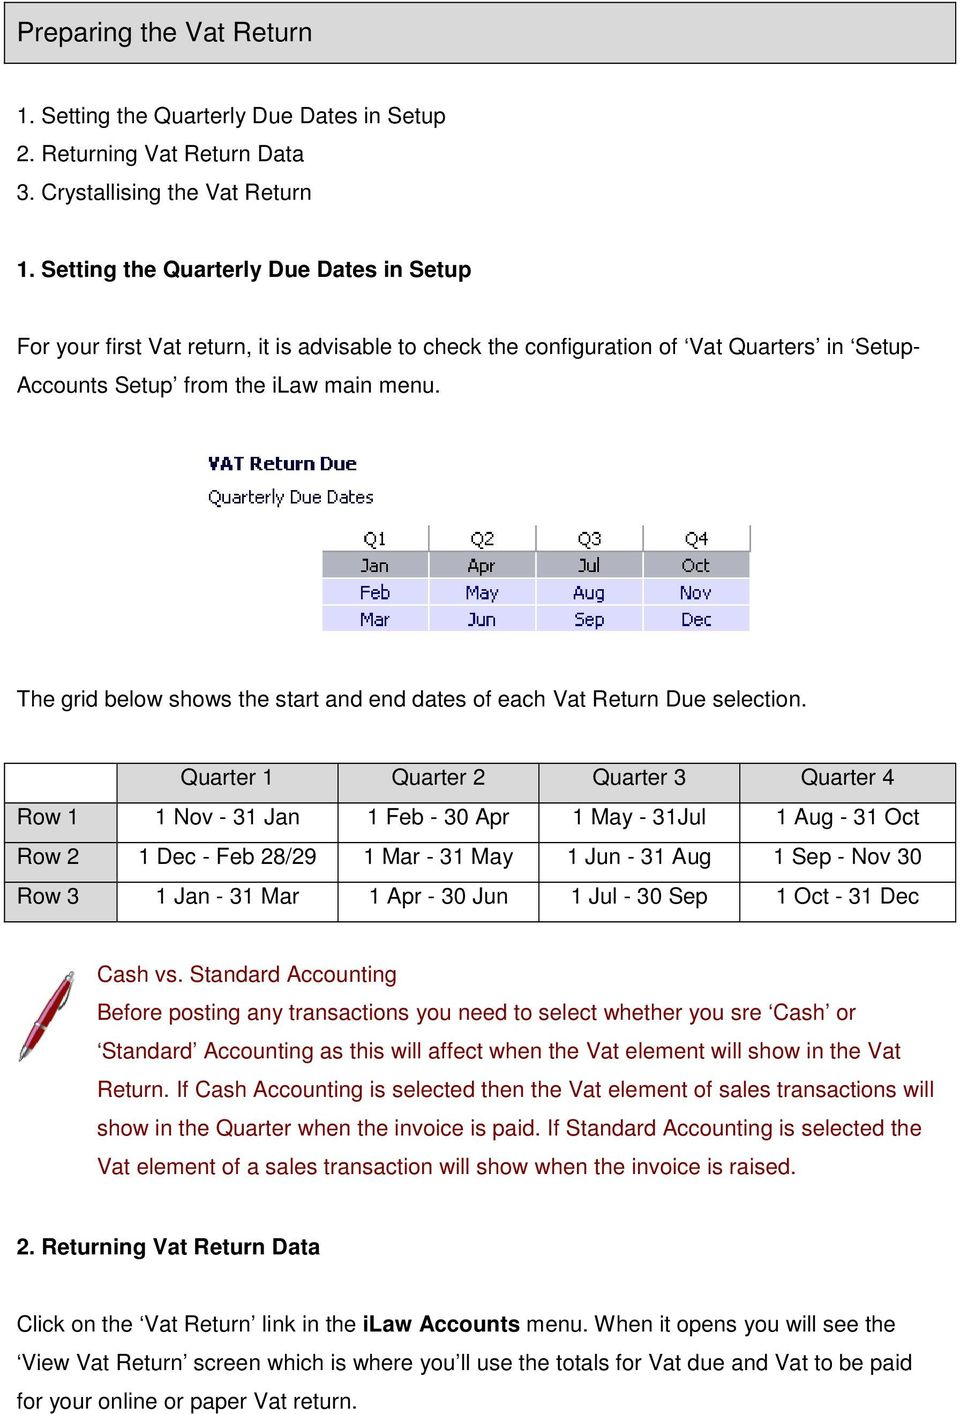 The grid below shows the start and end dates of each Vat Return Due selection.